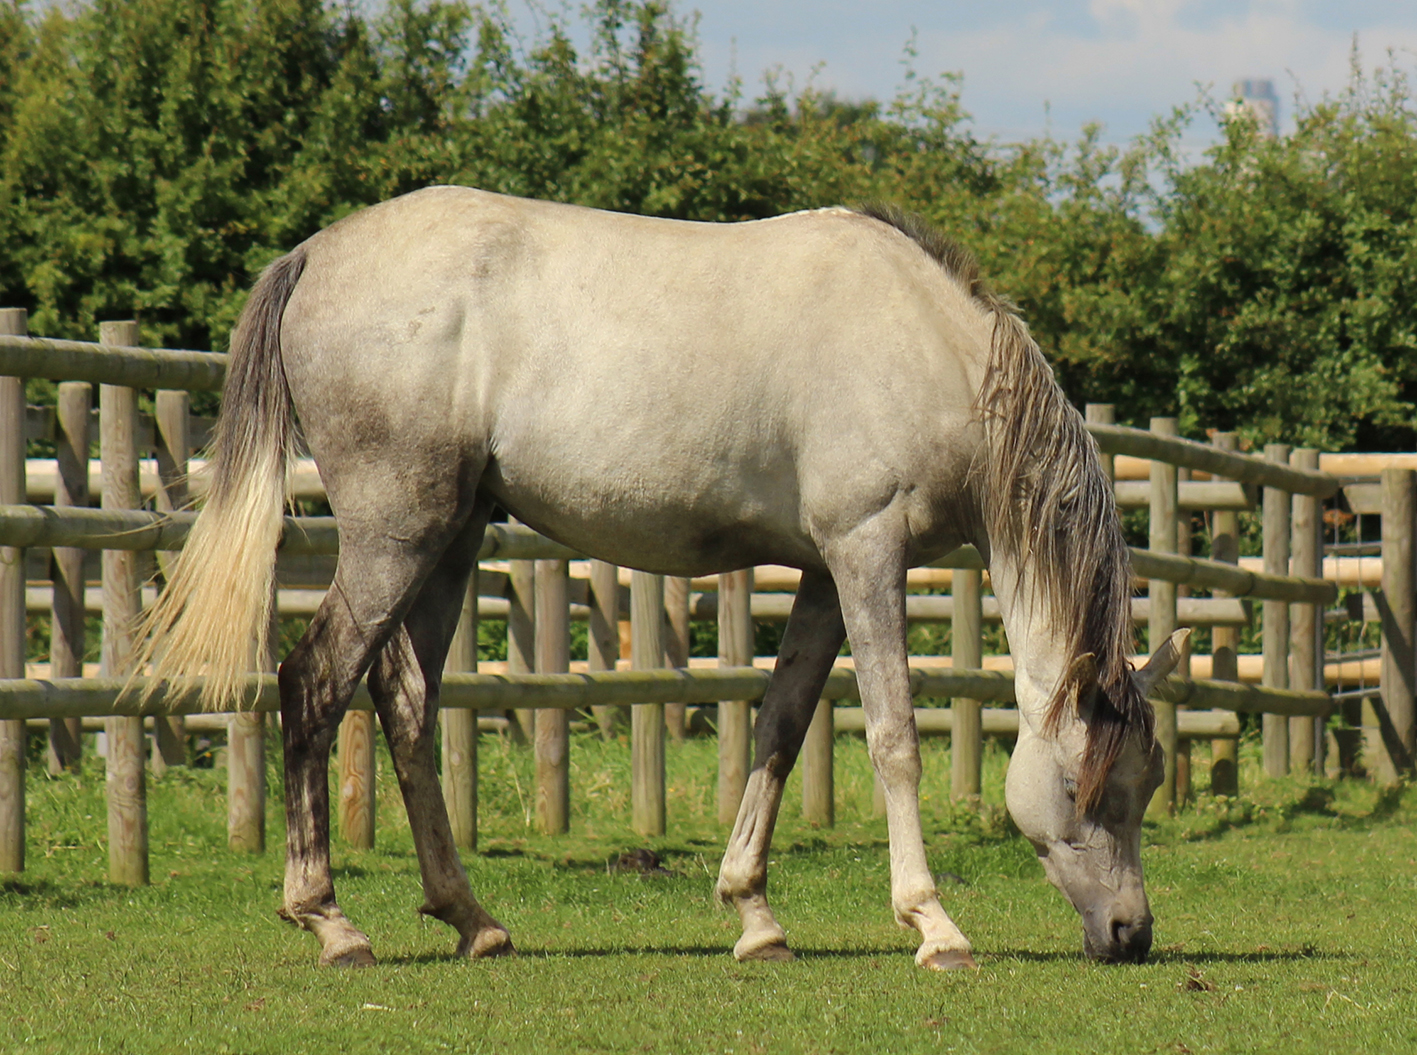 emerald now safe and well in charity care - Woman Sentenced for Horse Cruelty